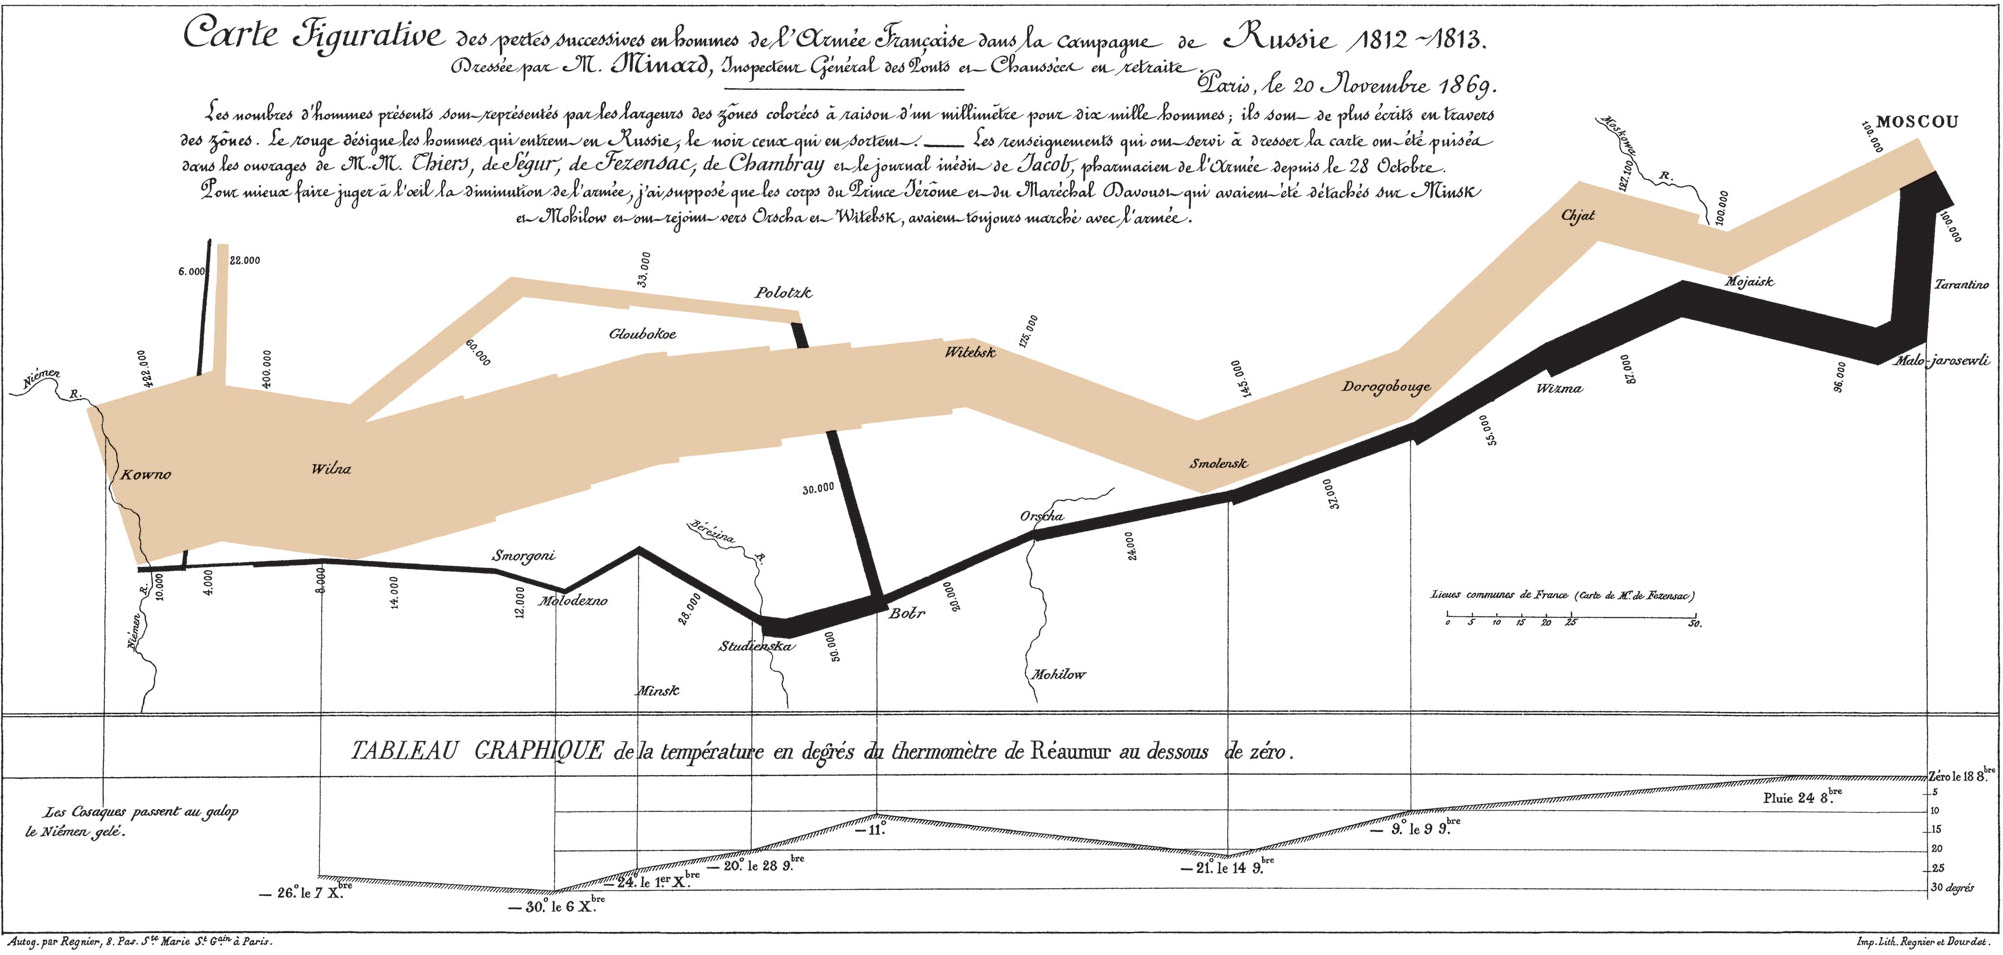 Minard's visualization of Napoleon's retreat from Moscow. Justifiably cited as a classic, it is also atypical and hard to emulate in its specifics.